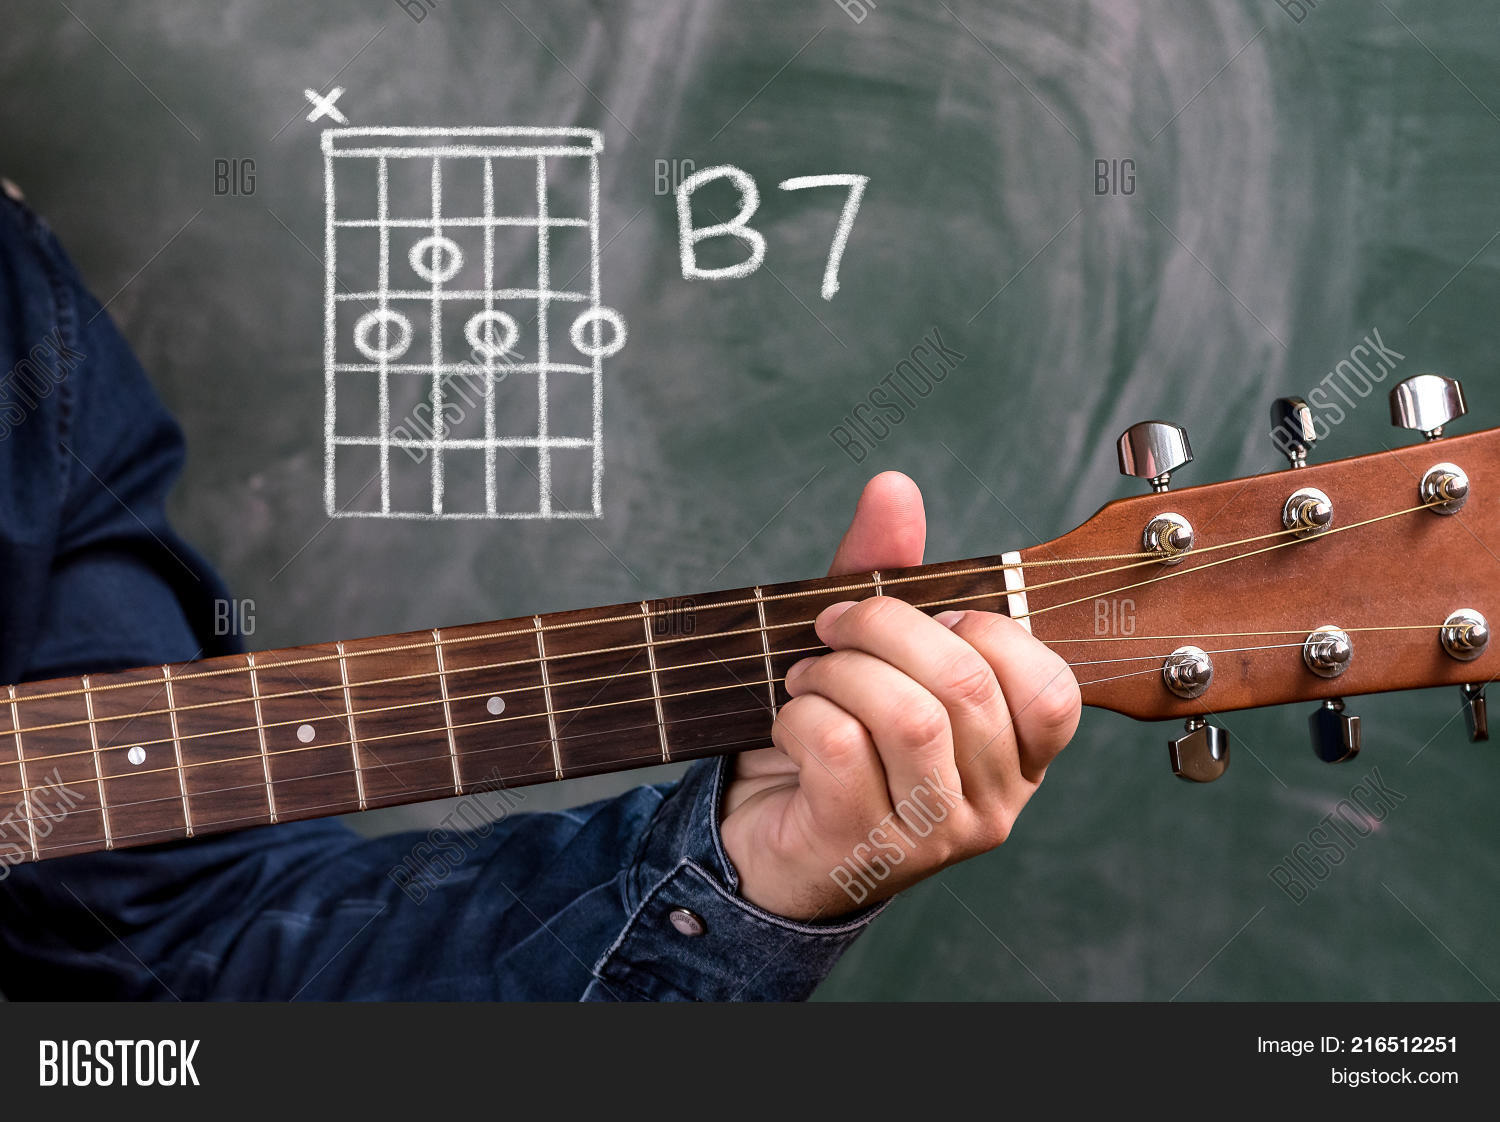 Man Playing Guitar Image Photo Free Trial Bigstock